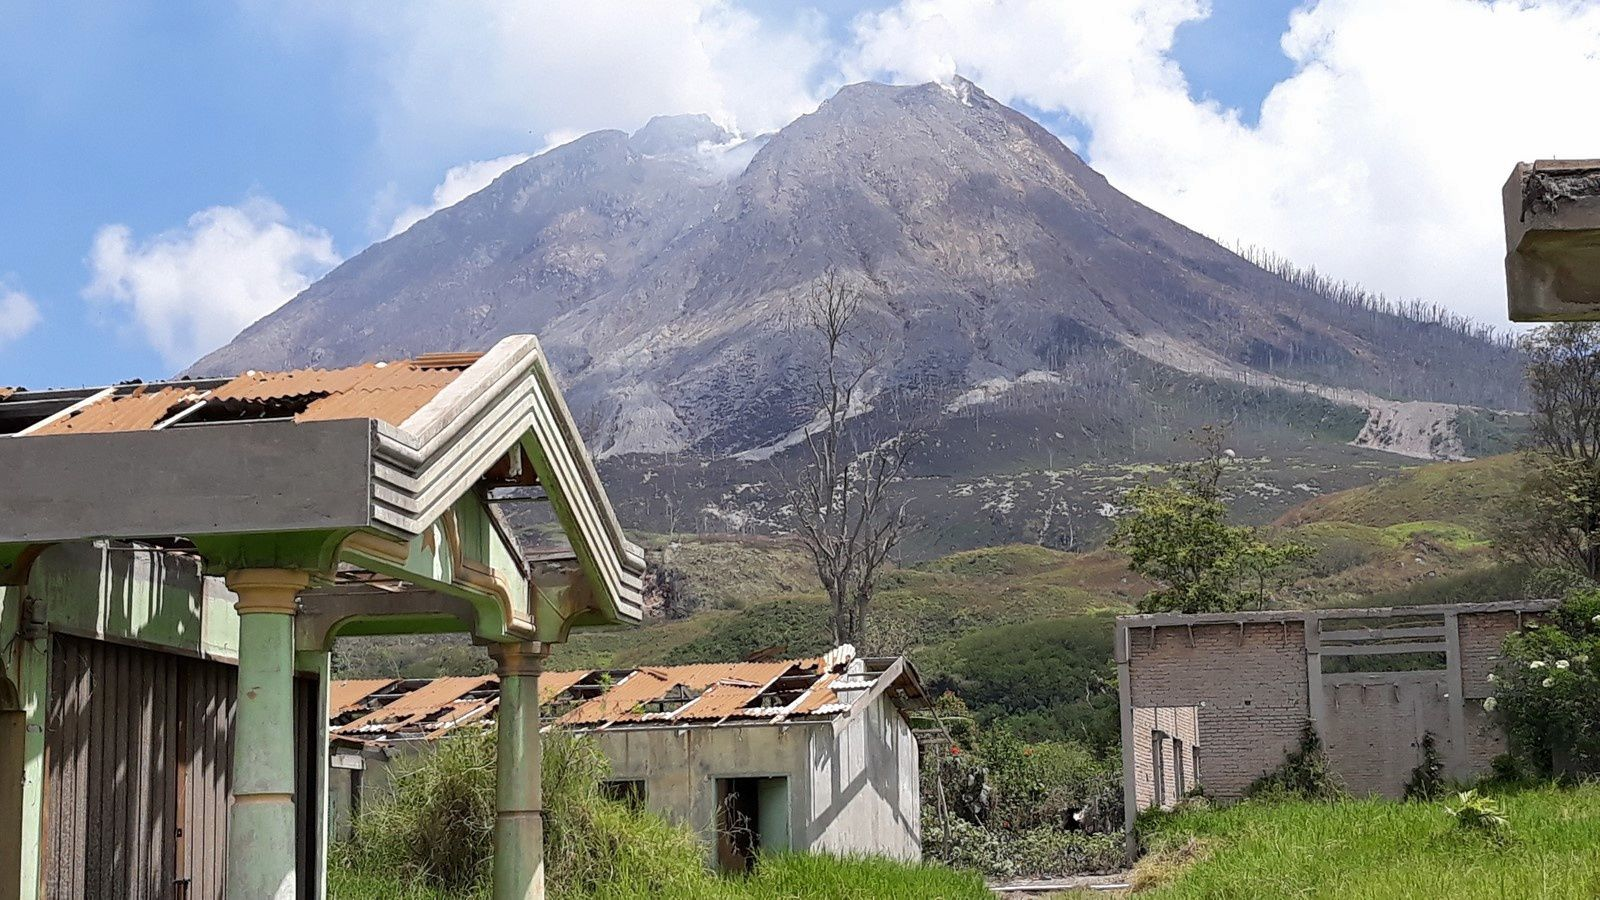 Sinabung - abandoned village of Suka Nalu / northeastern slope .Tits collapsed by the weight of ashes. We will notice the absence of dome at the top. - photo © Thierry SLUYS on 15.07.2019